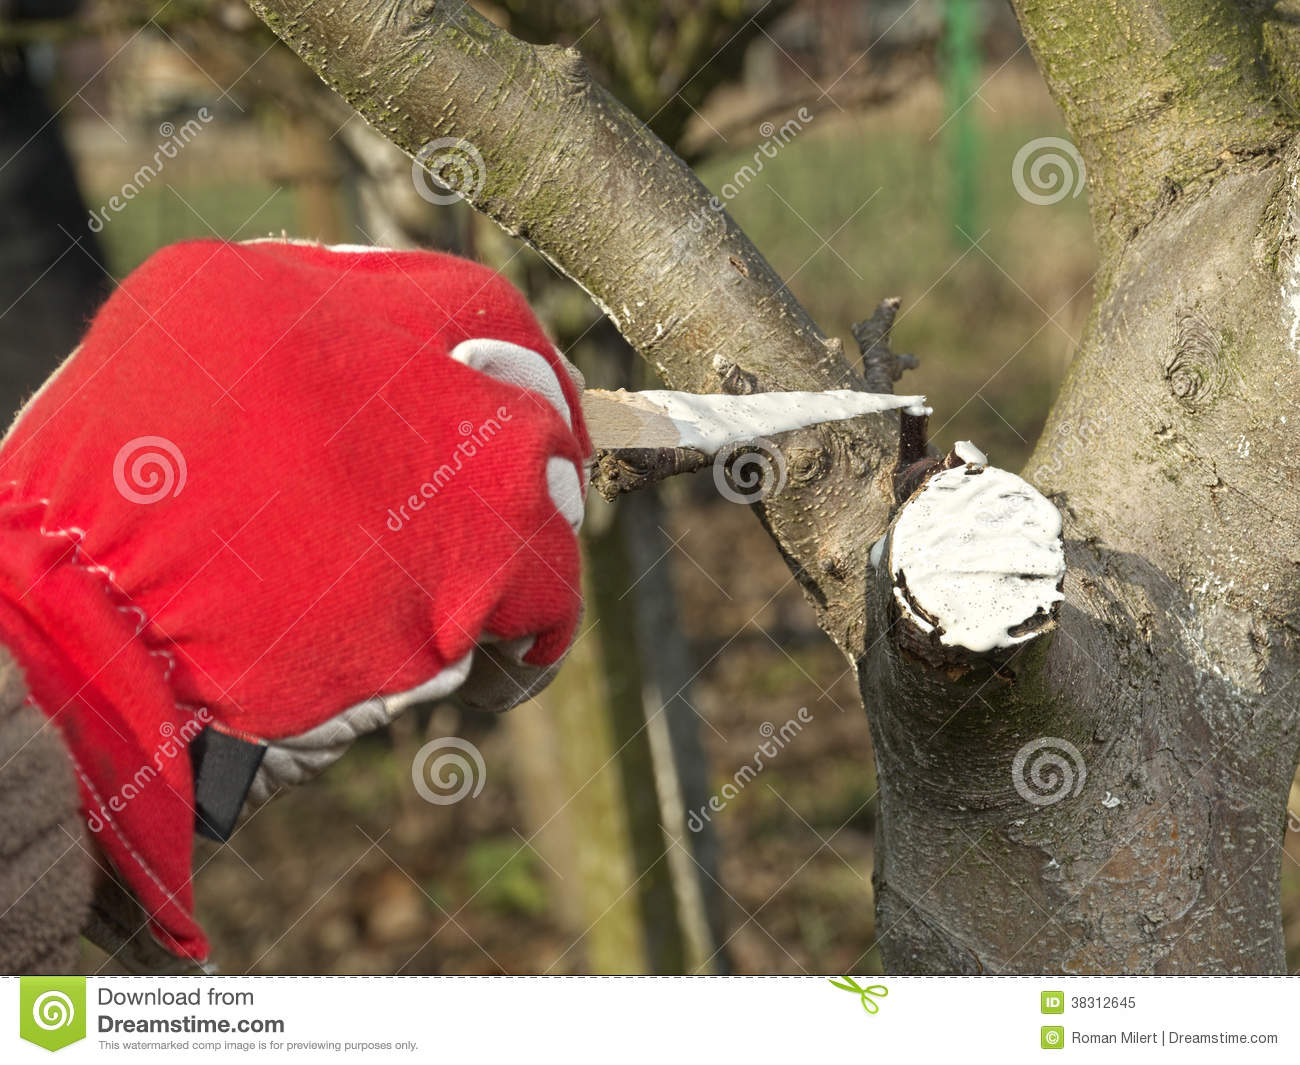 Protection de ressort d 39 arbre fruitier image stock image for Arbre fruitier